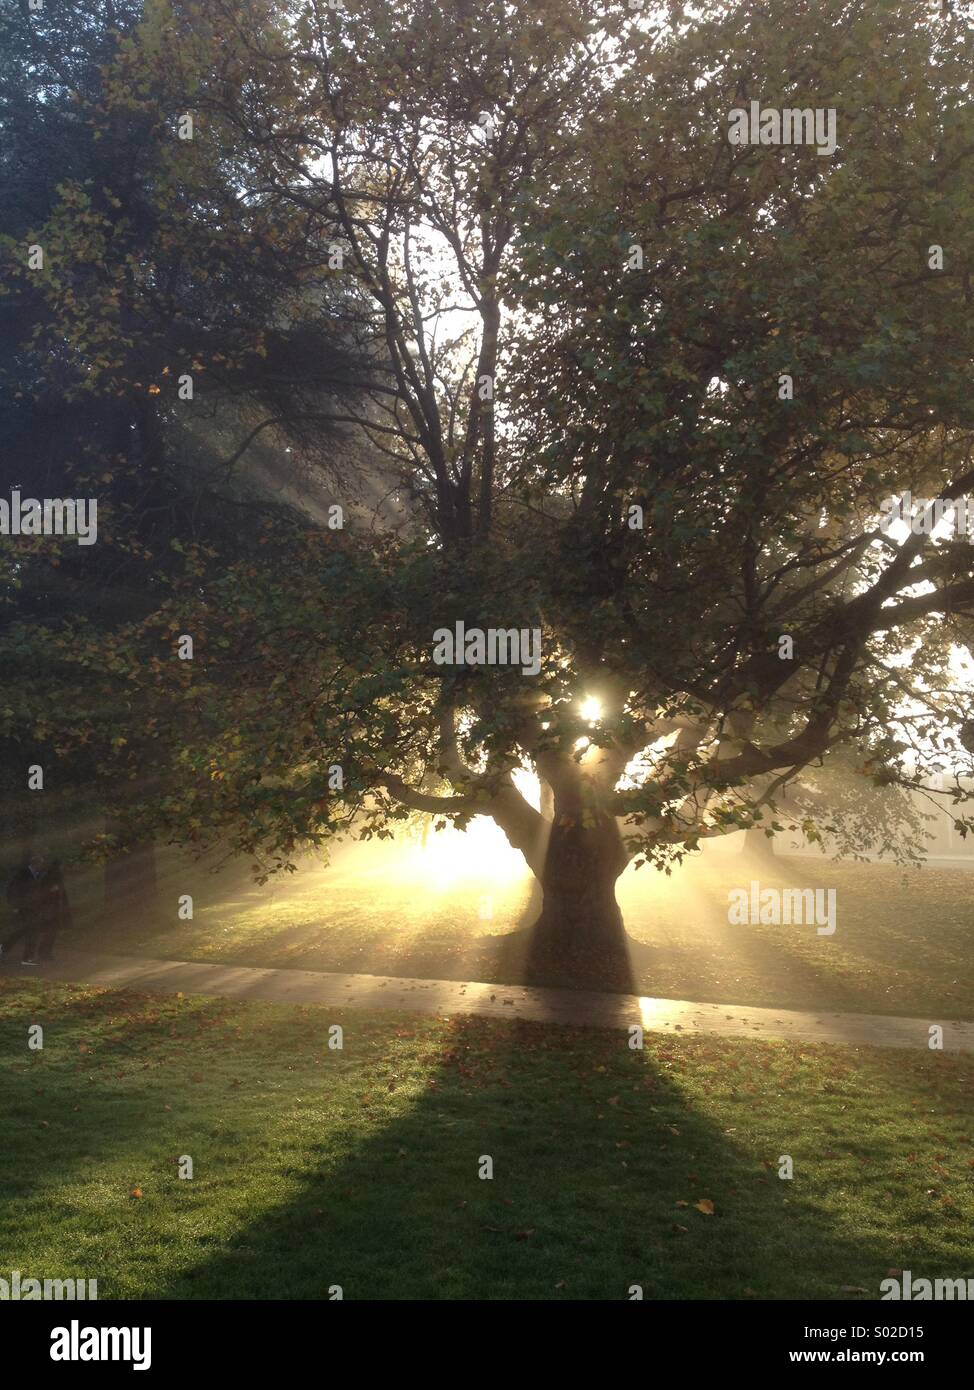 Golden sun rays beaming through the leaves of a tree - Stock Image